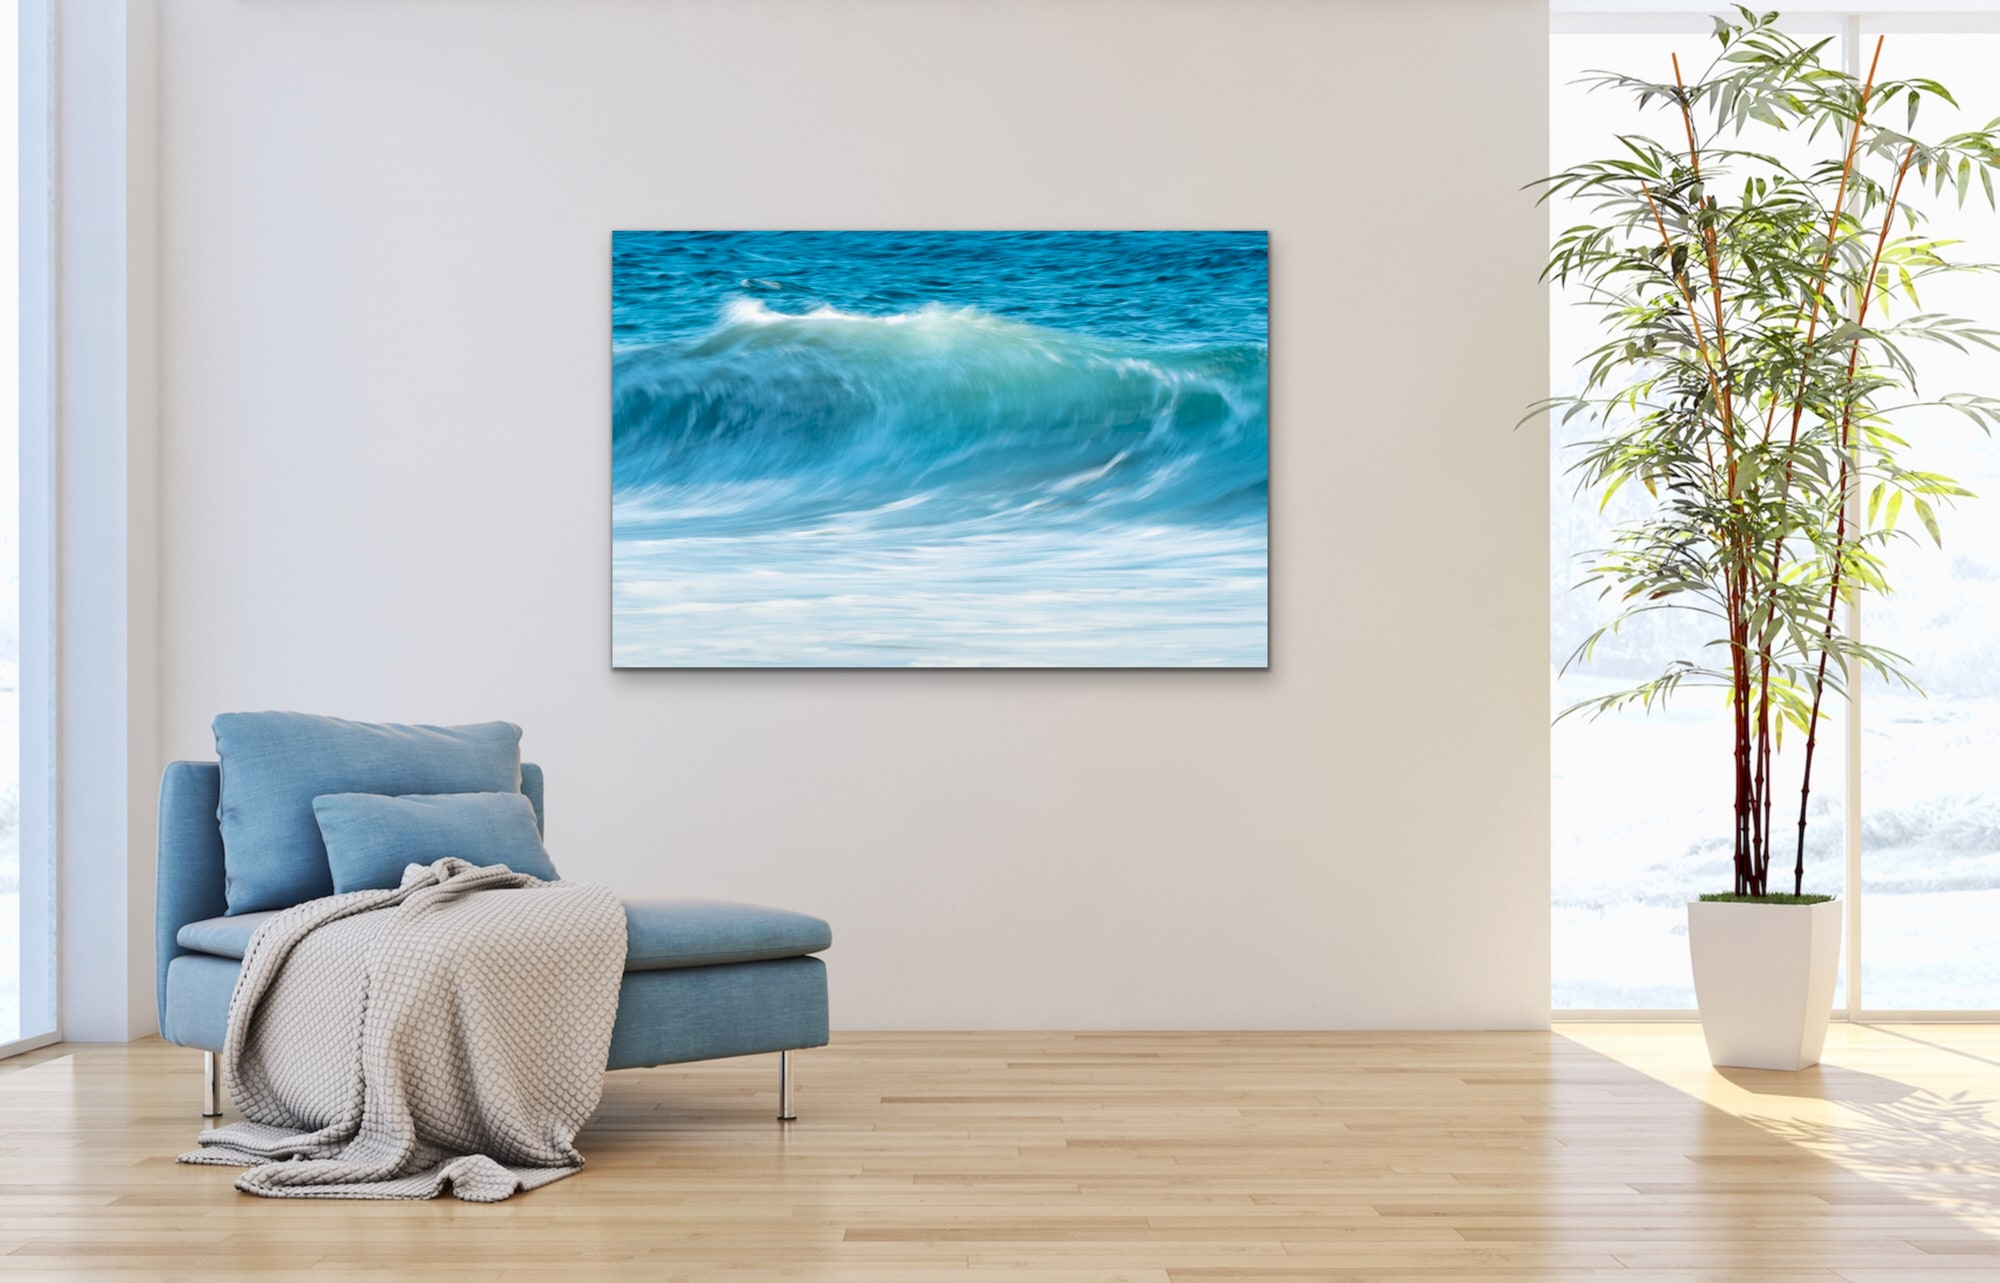 <div class='title'>           Present Moment         </div>                 <div class='description'>           A California ocean wave cresting with blue, turquoise and white colors.         </div>